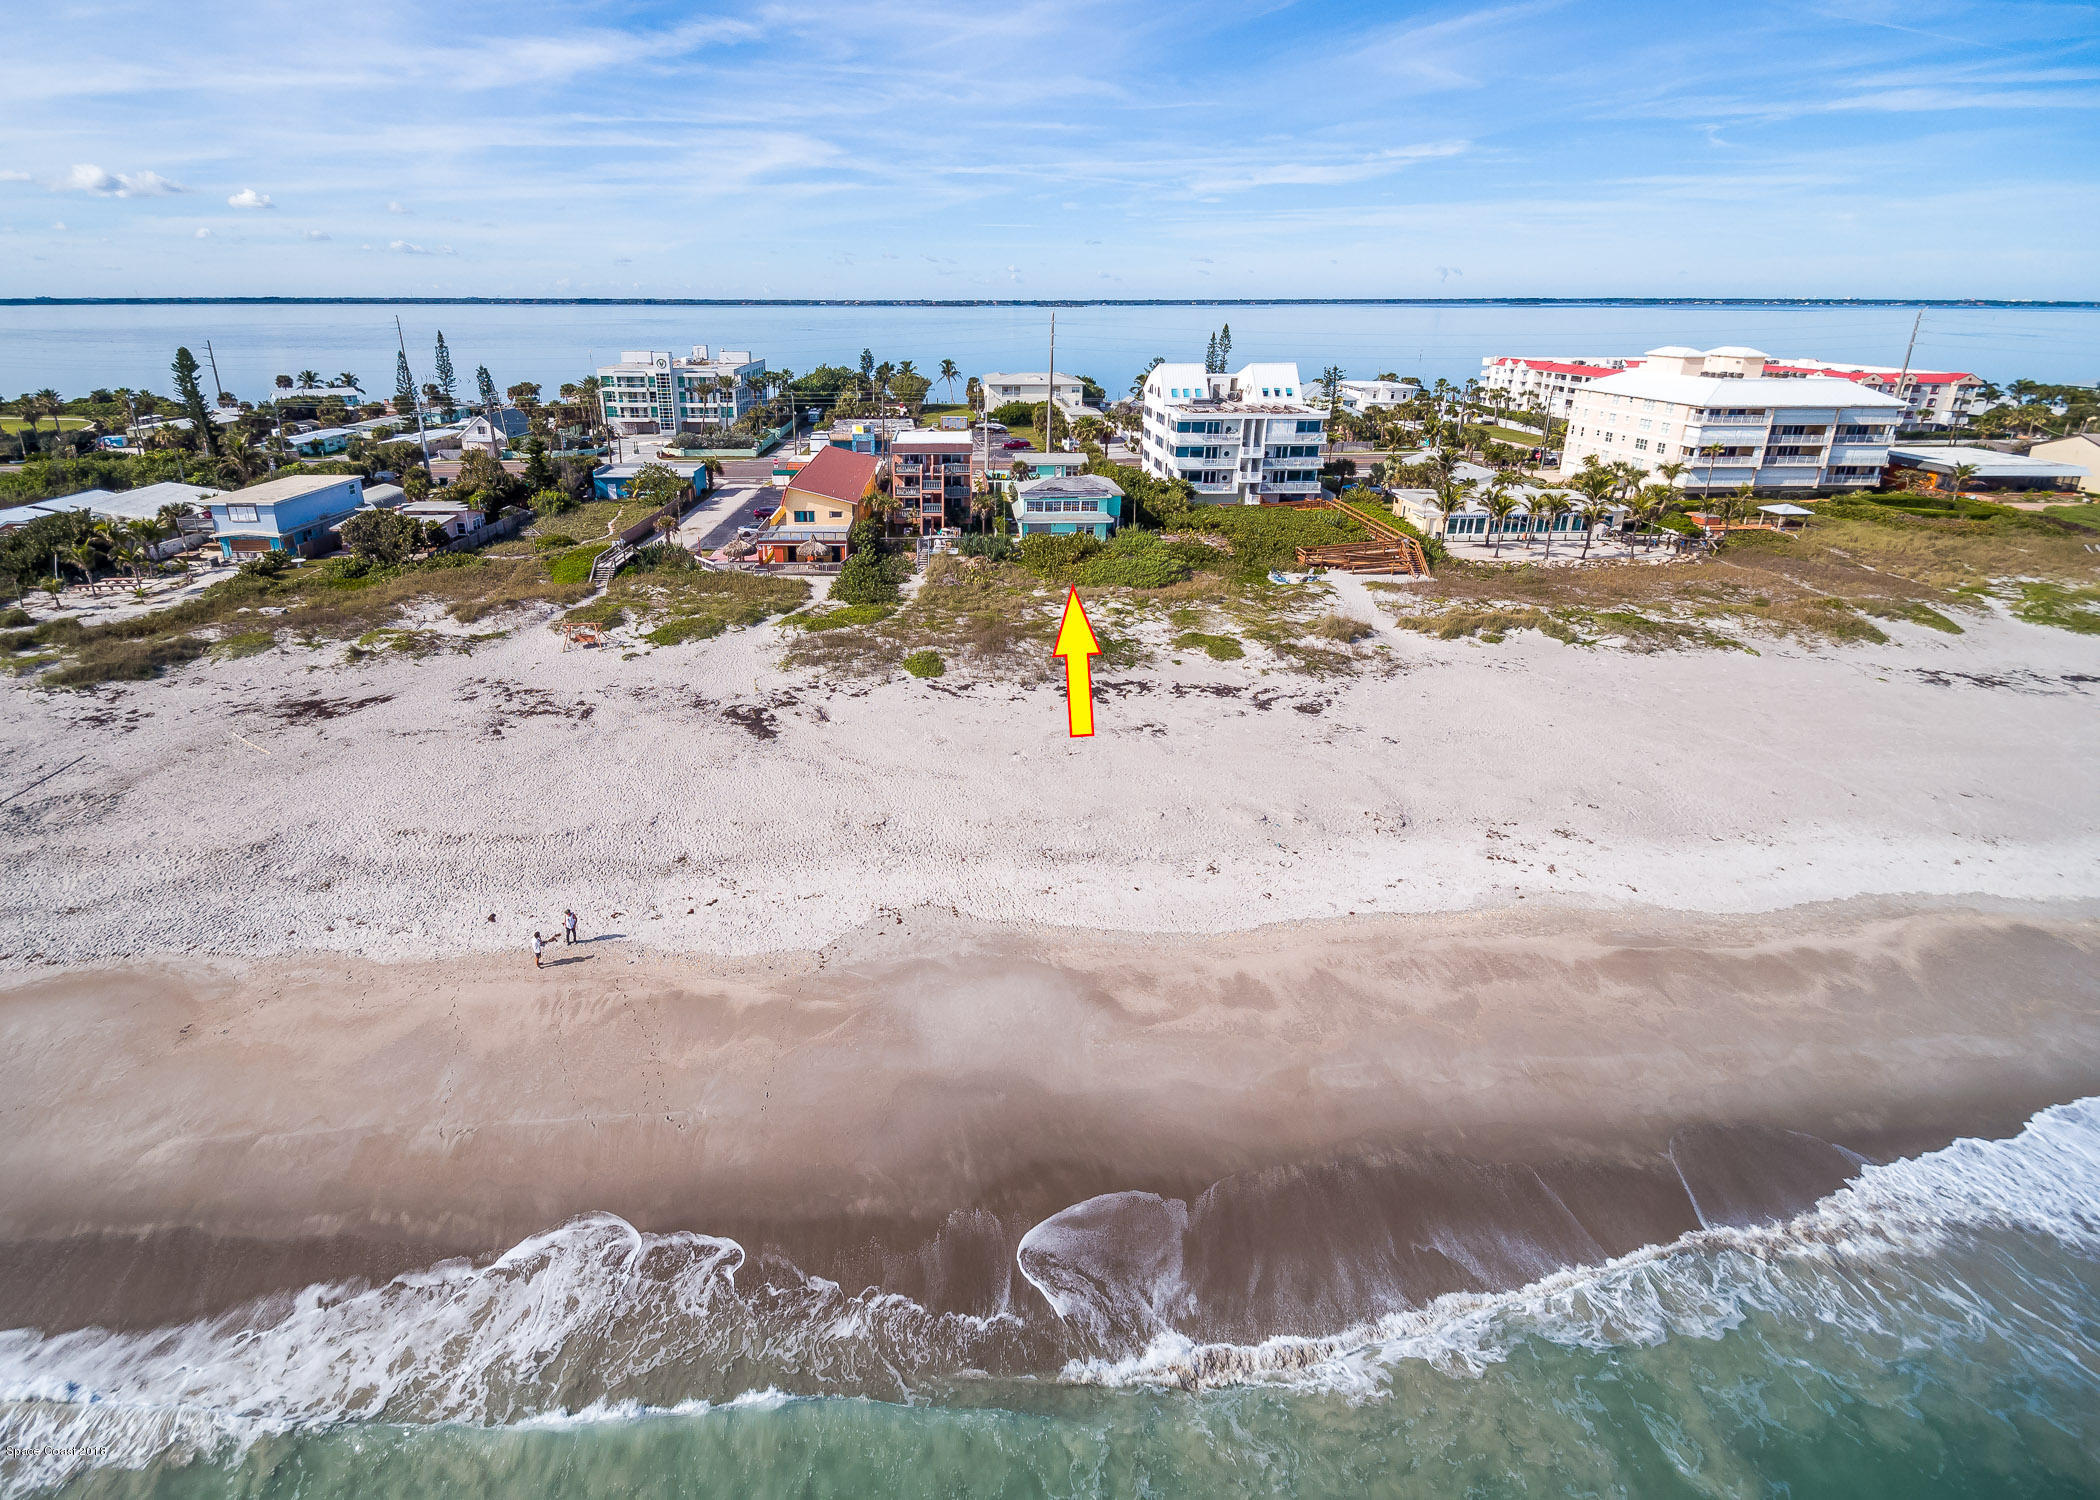 Property for Sale at 3477 S Atlantic 3477 S Atlantic Cocoa Beach, Florida 32931 United States